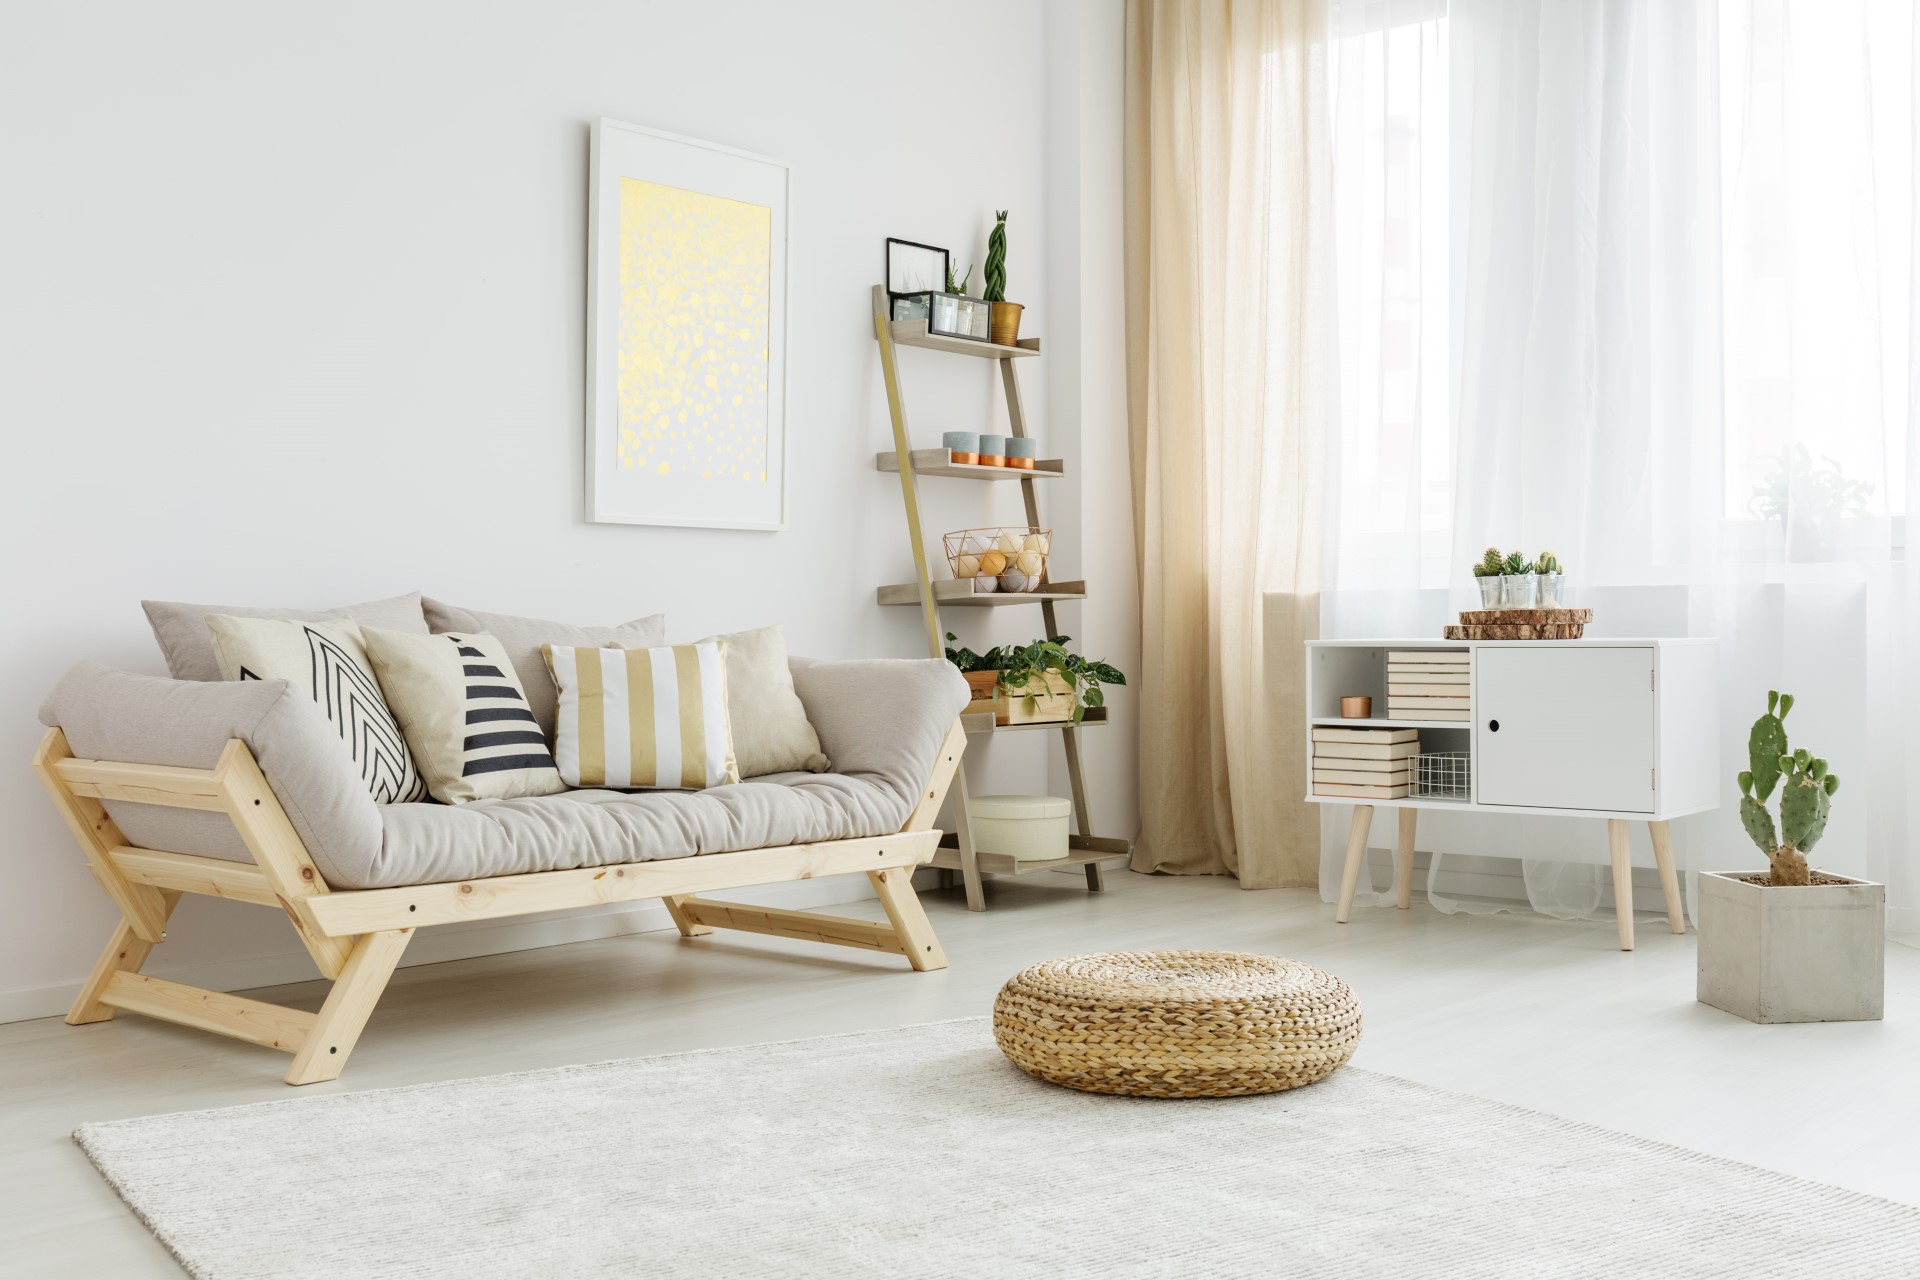 living room with decorations - Header Top Slider